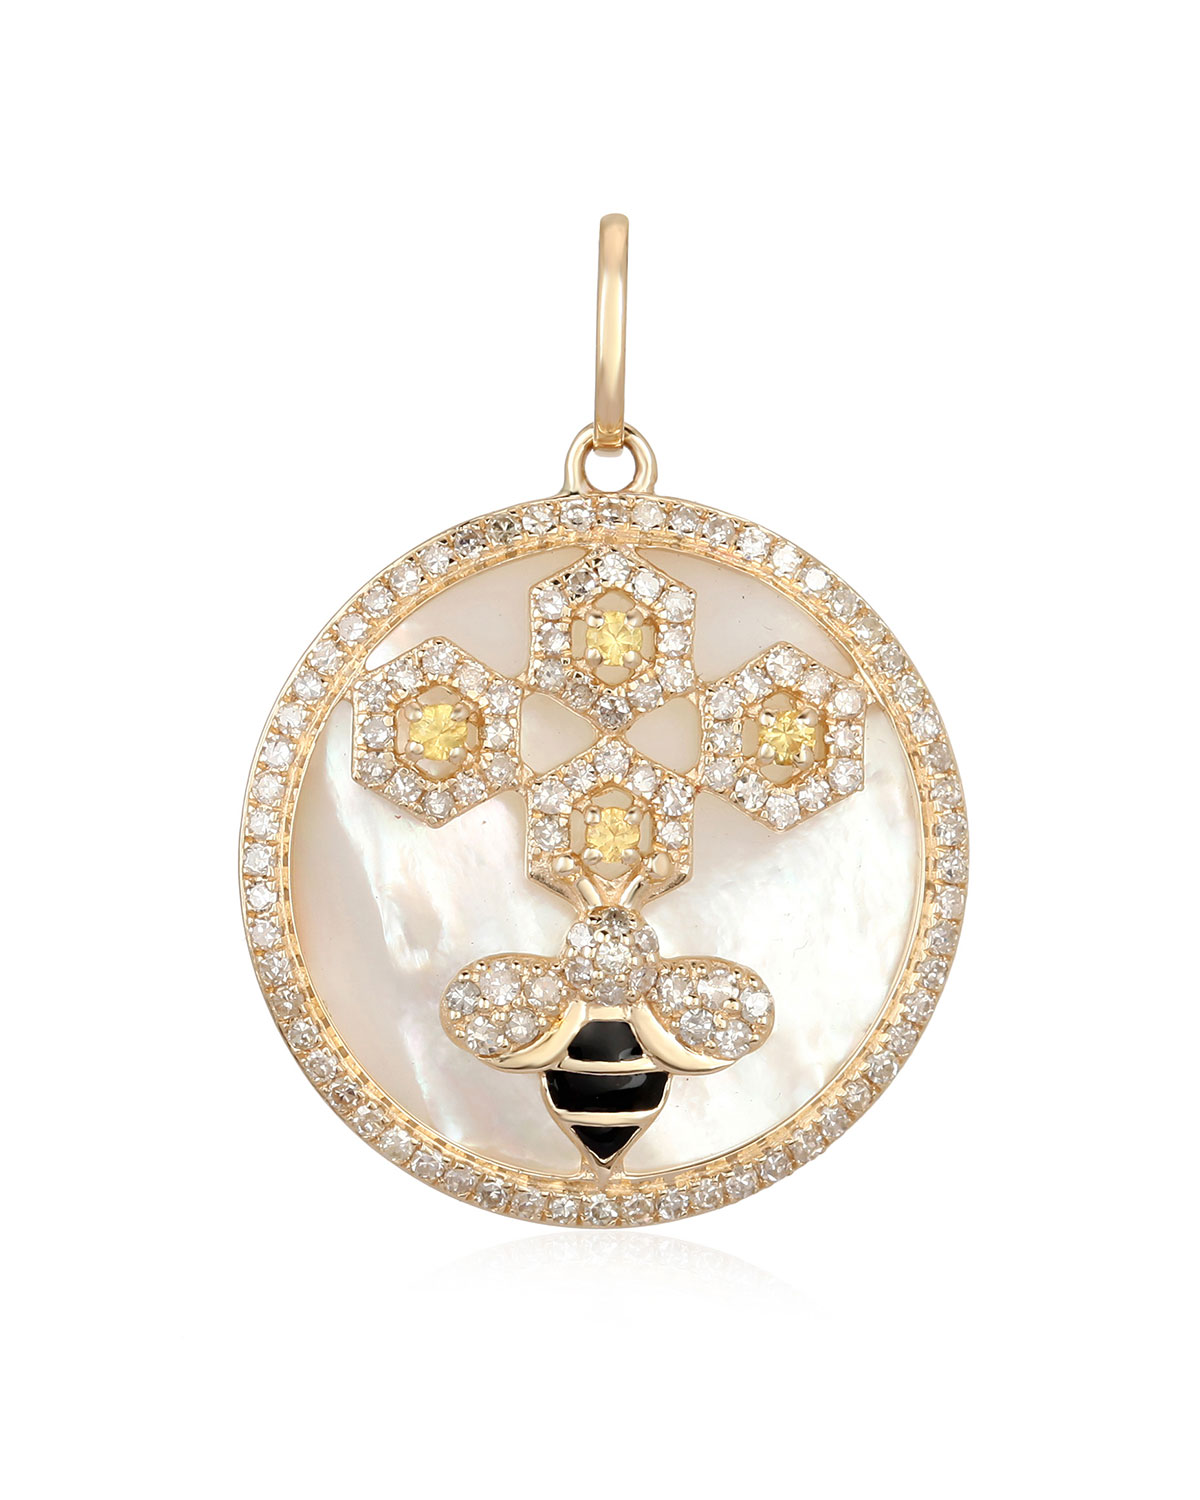 Honeycomb Bee Mother-of-Pearl and Diamond Pendant